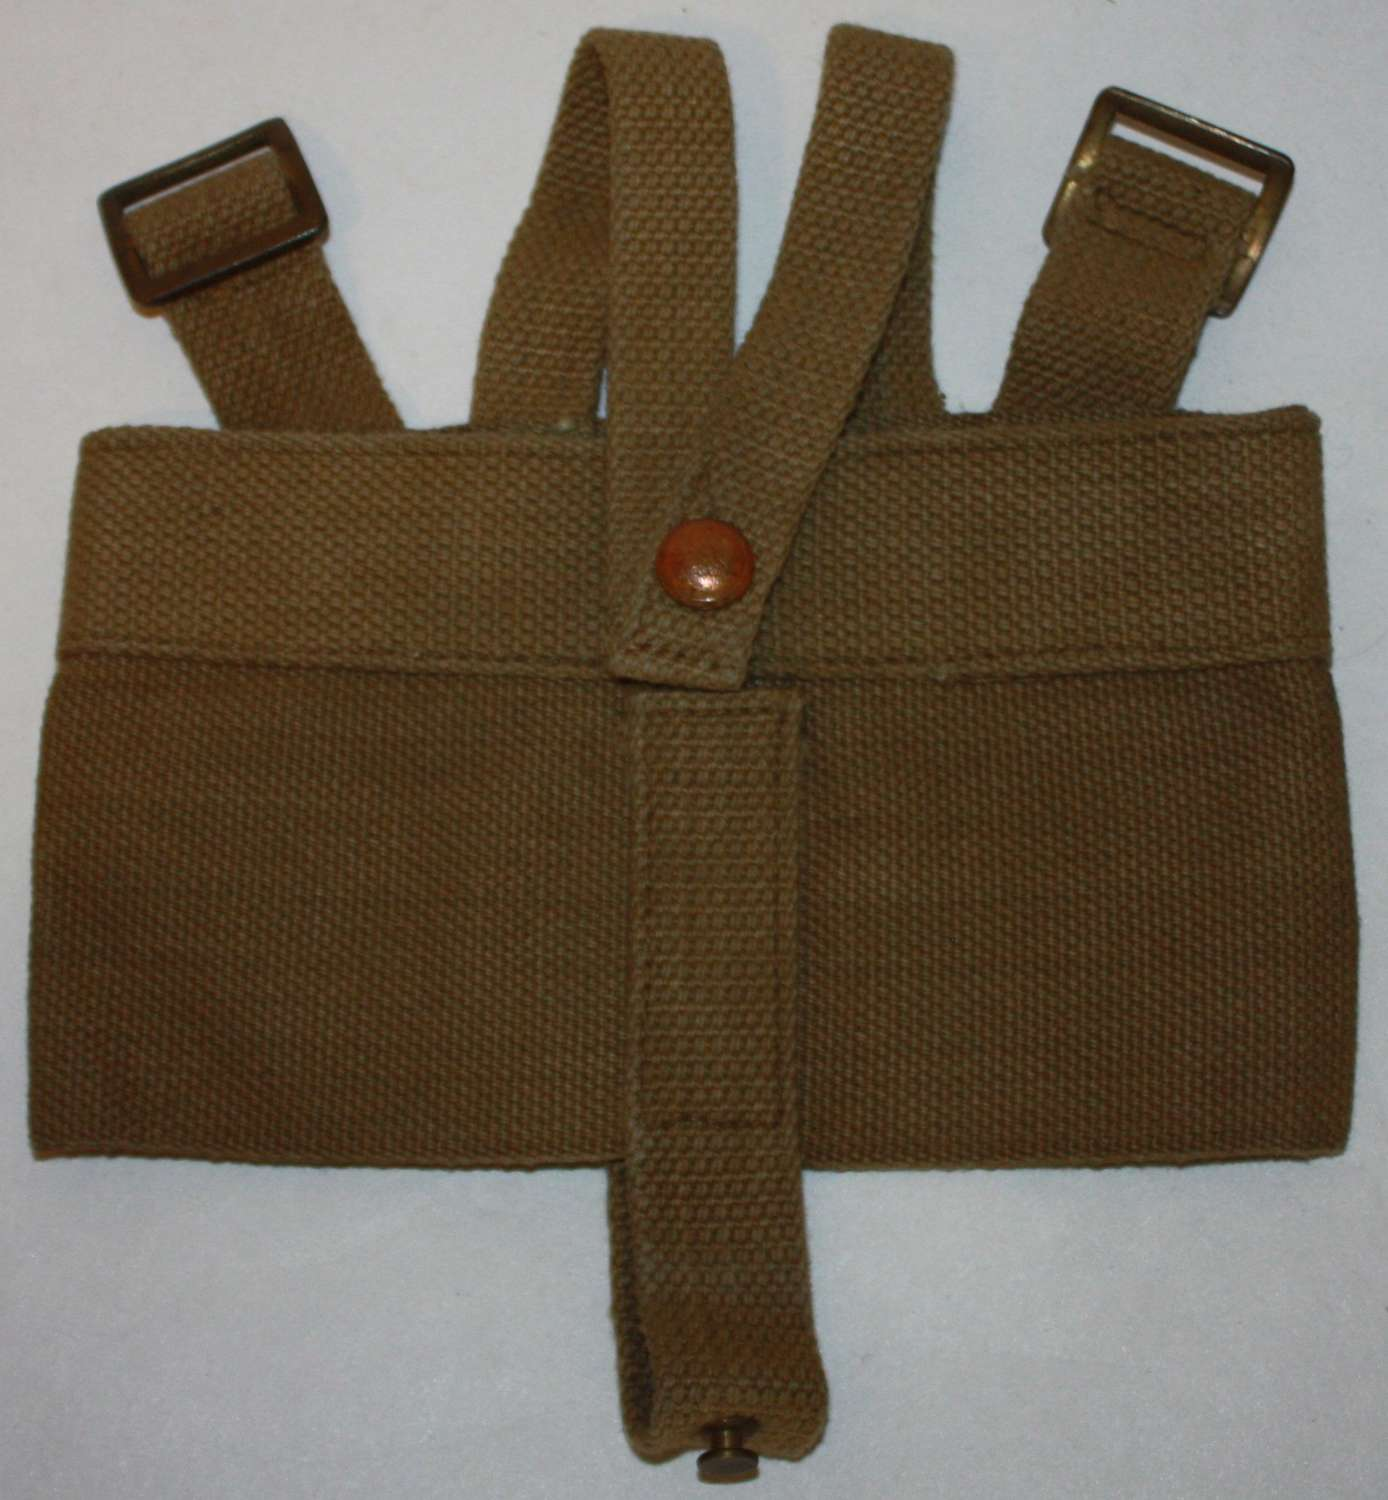 A GOOD 1940 CAVALRY PATTERN WATER BOTTLE CRADLE 1940 DATED